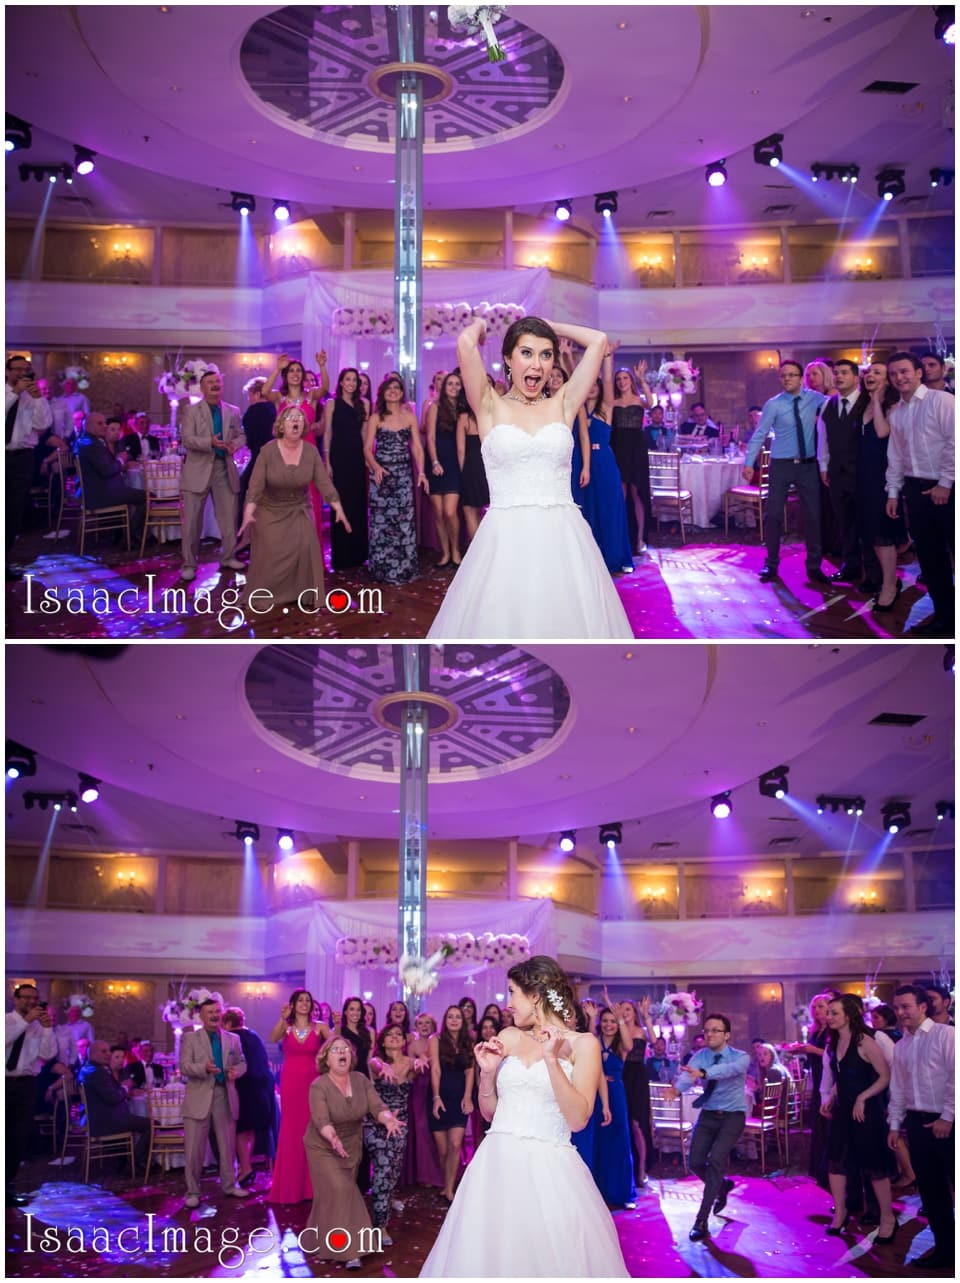 National Restaurant and Banquet Hall Wedding Celebration_7092.jpg